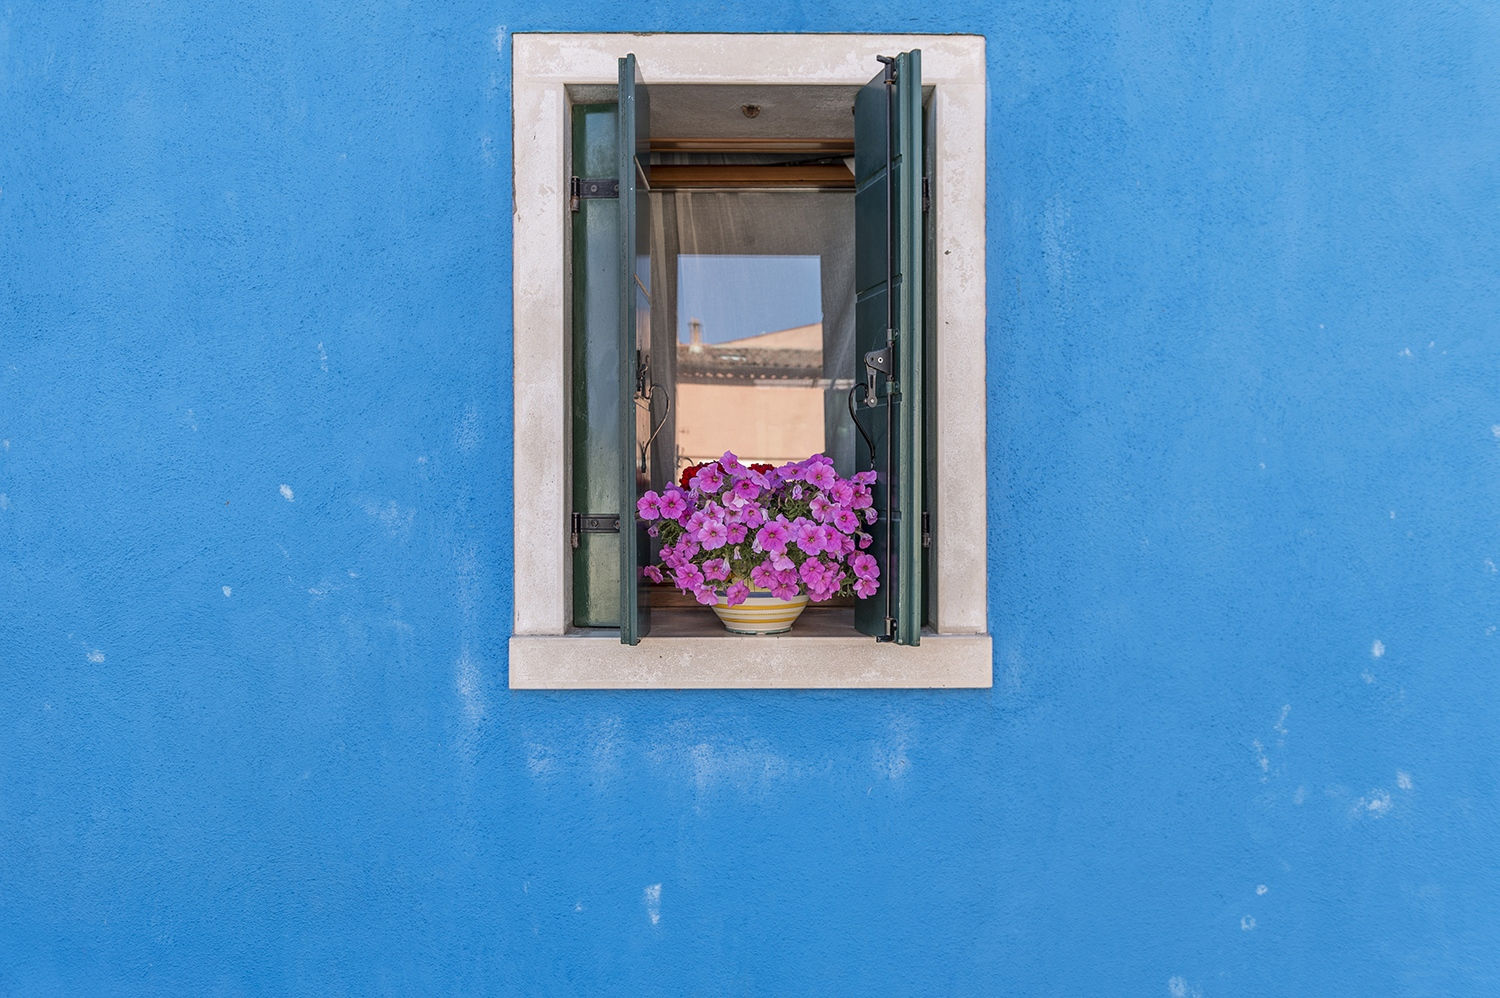 Burano's window